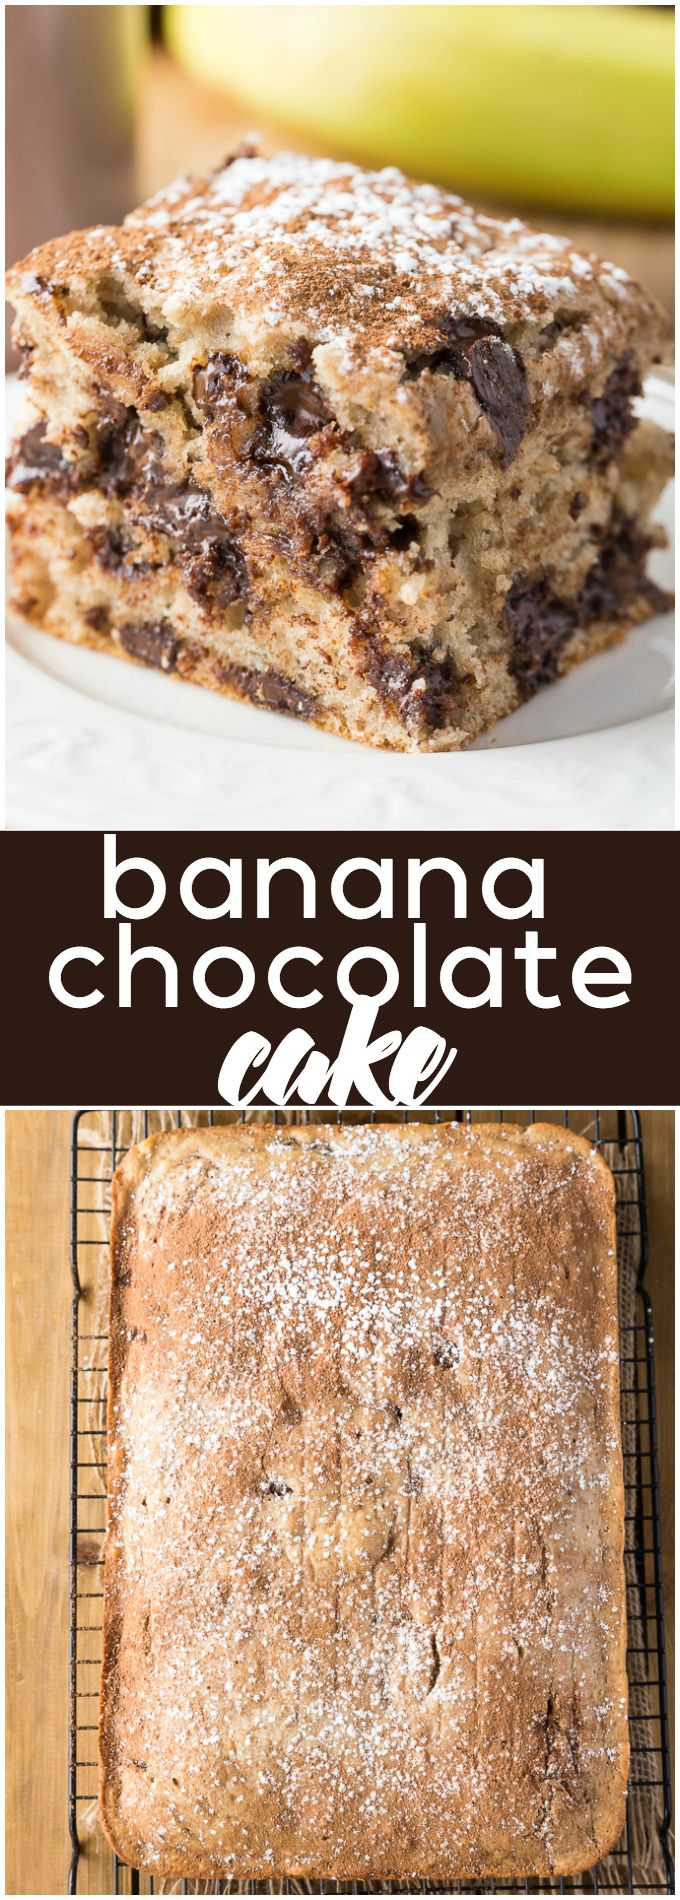 Banana Chocolate Cake - Rich, luscious and fully of yummy chocolate flavour. You won't be able to stop at just one piece. #ad